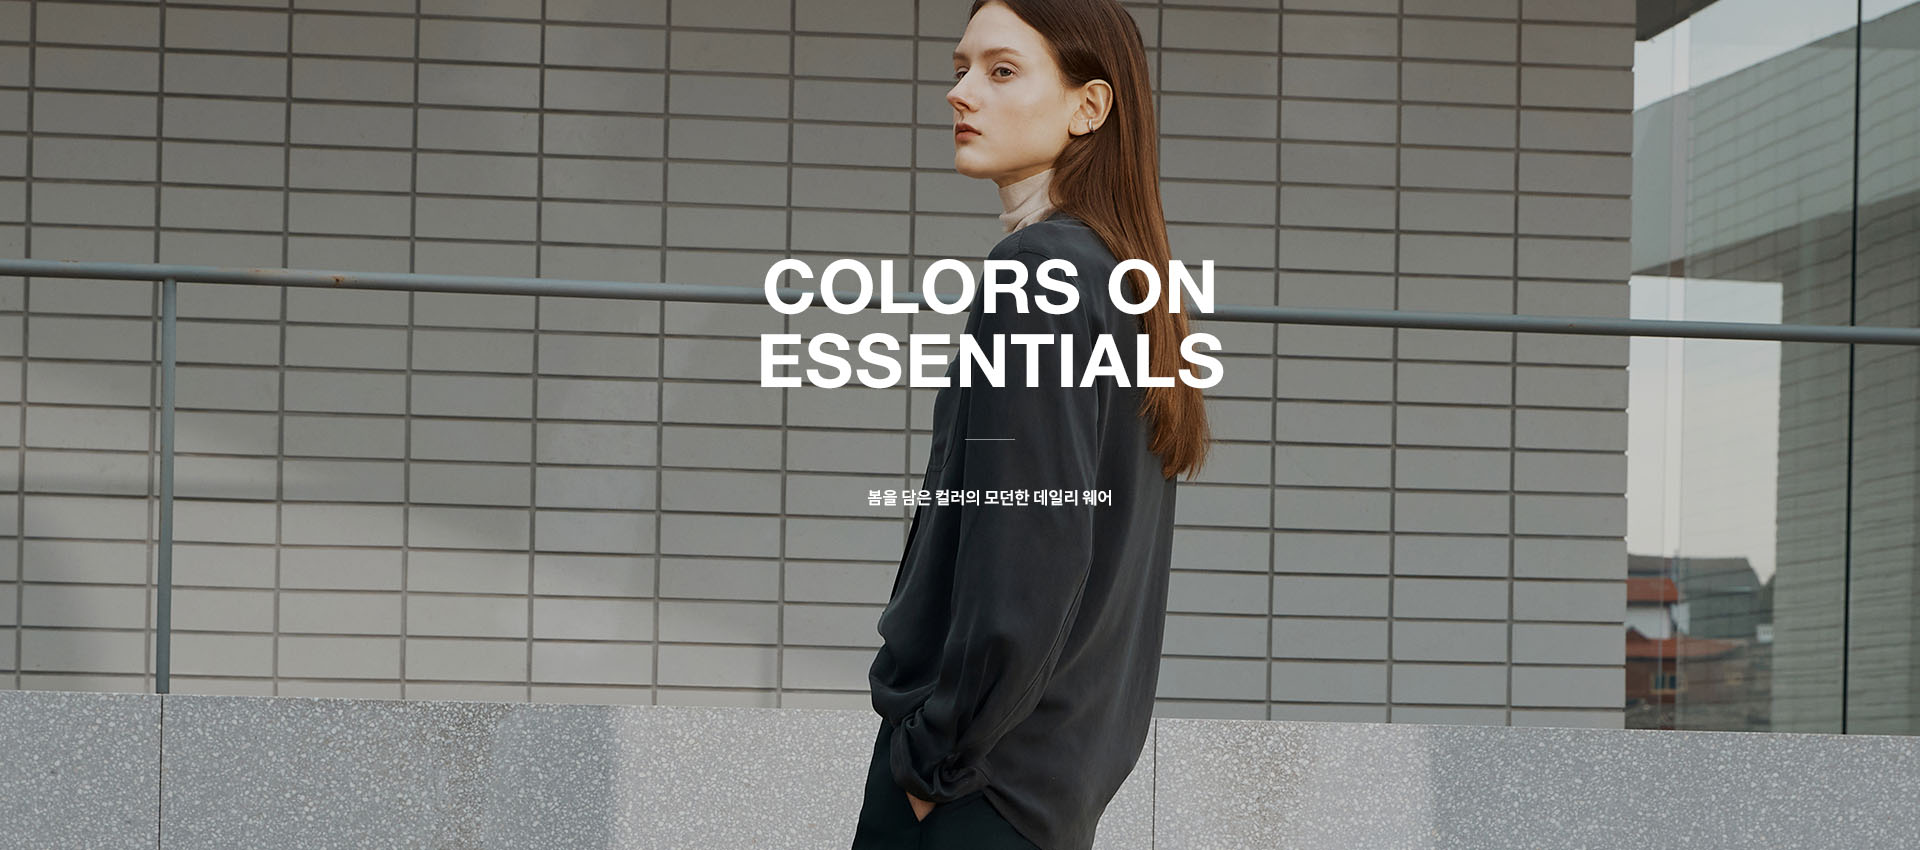 COLORS ON ESSENTIALS